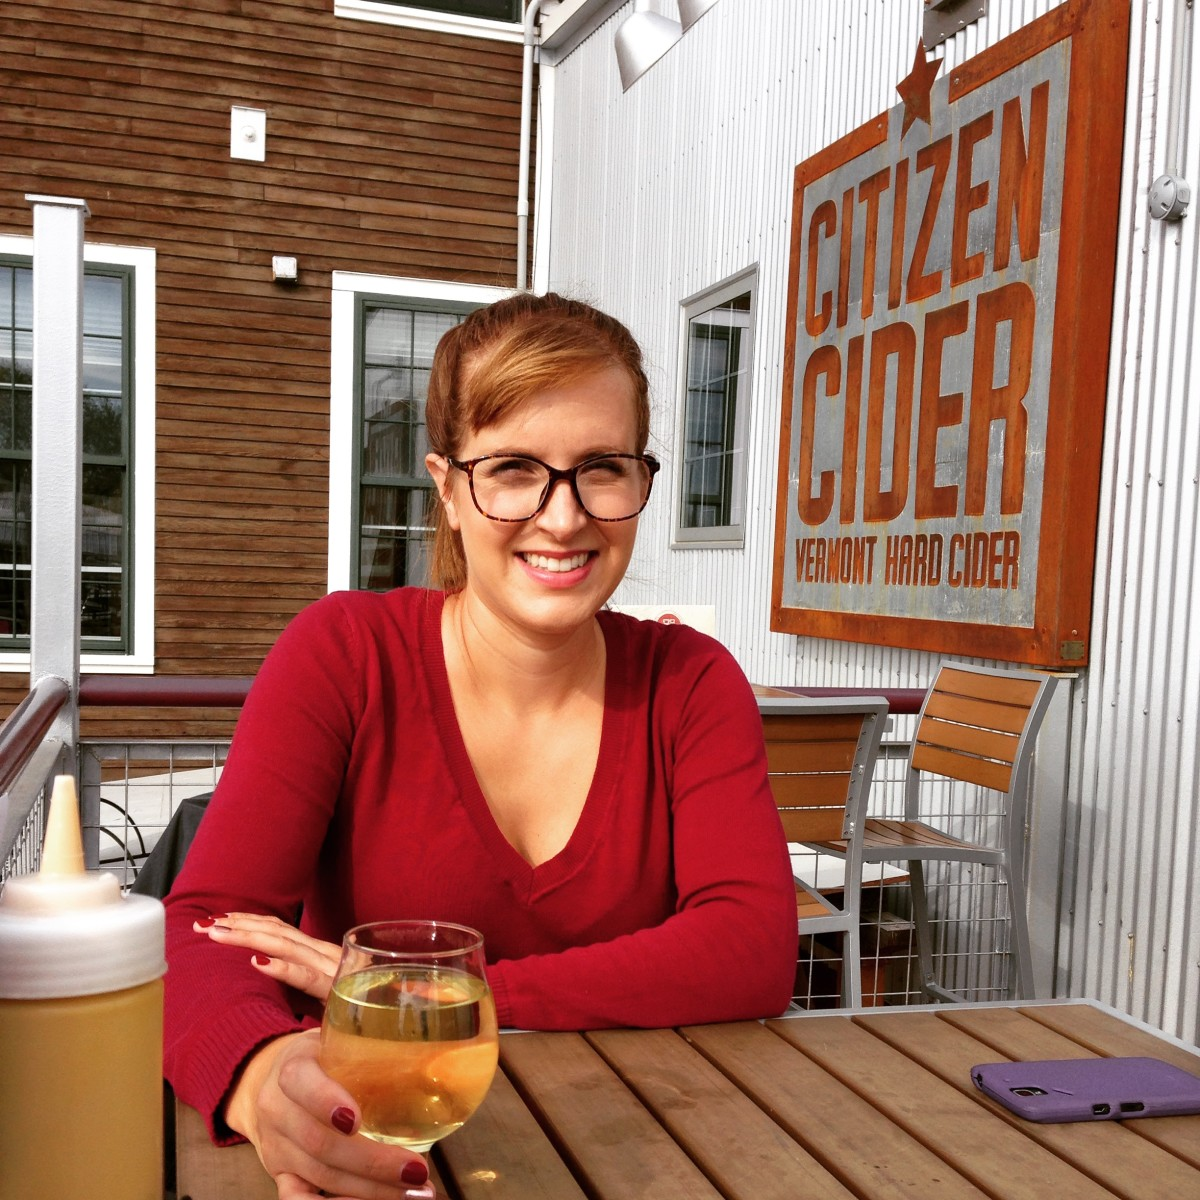 Citizen Cider has a great outdoor seating area.